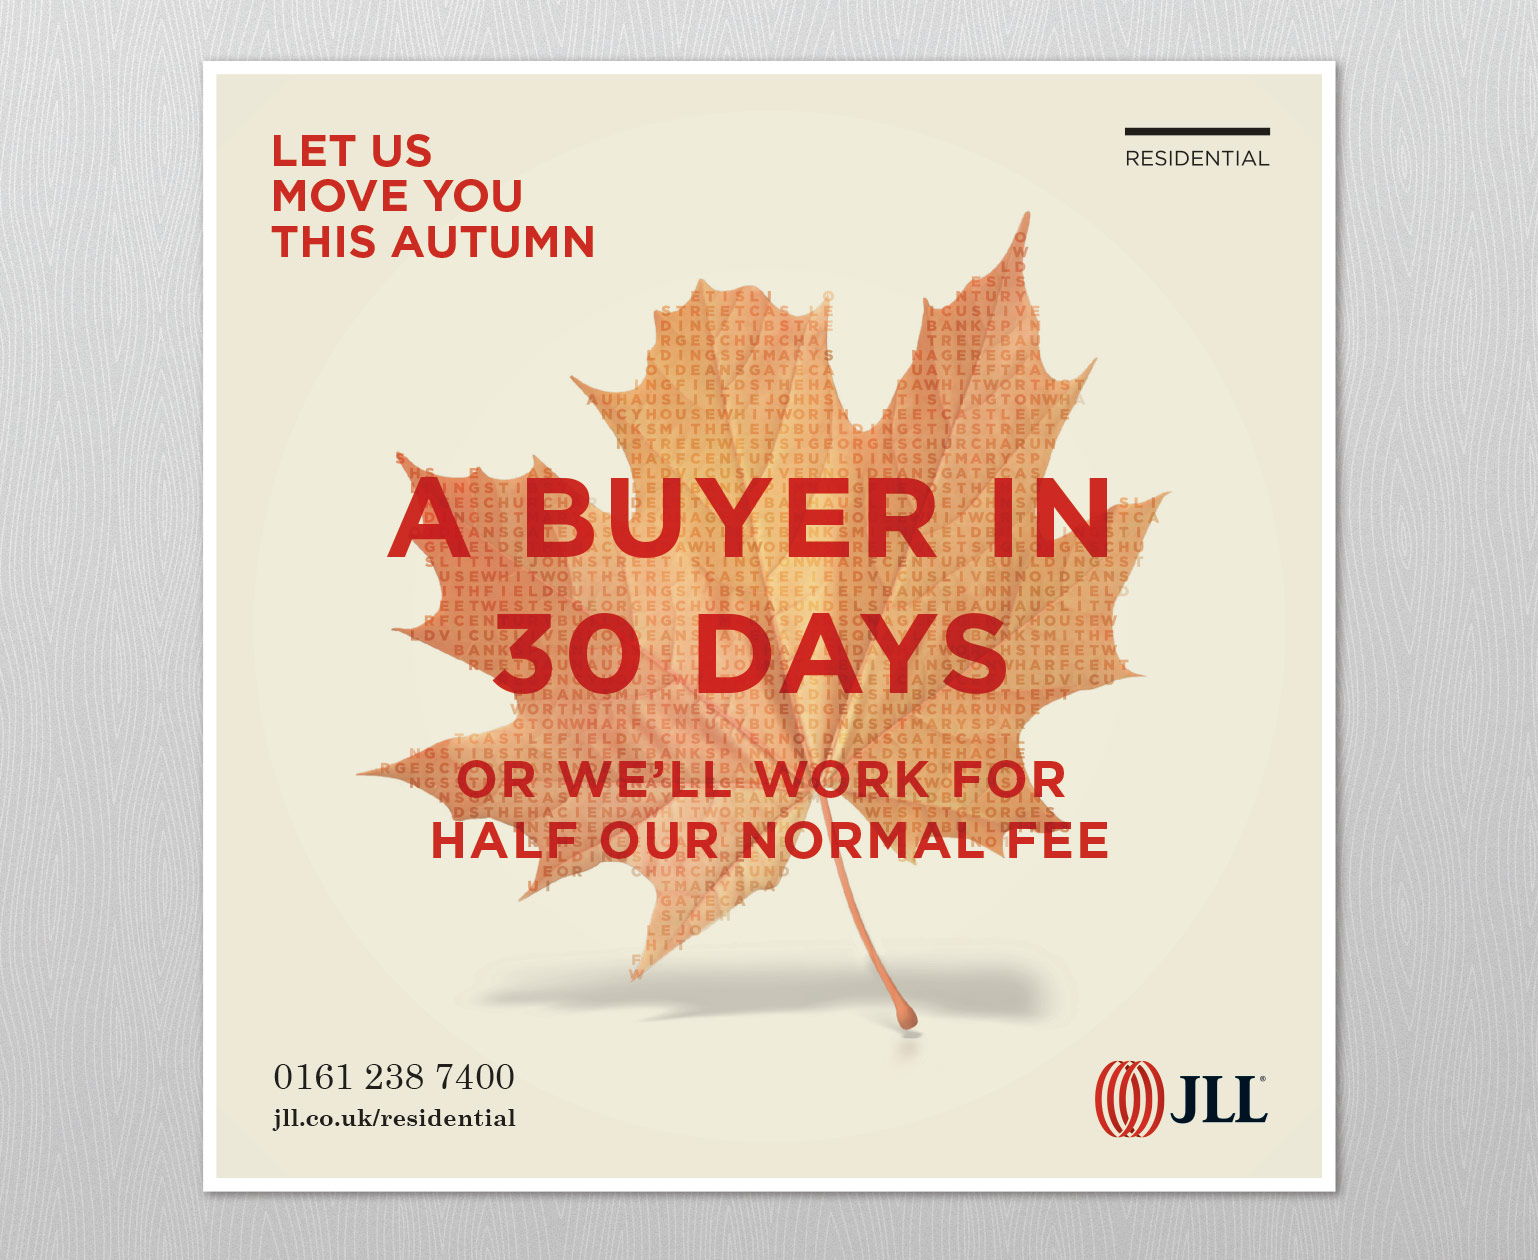 JLL Seasonal Campaign galley image 4